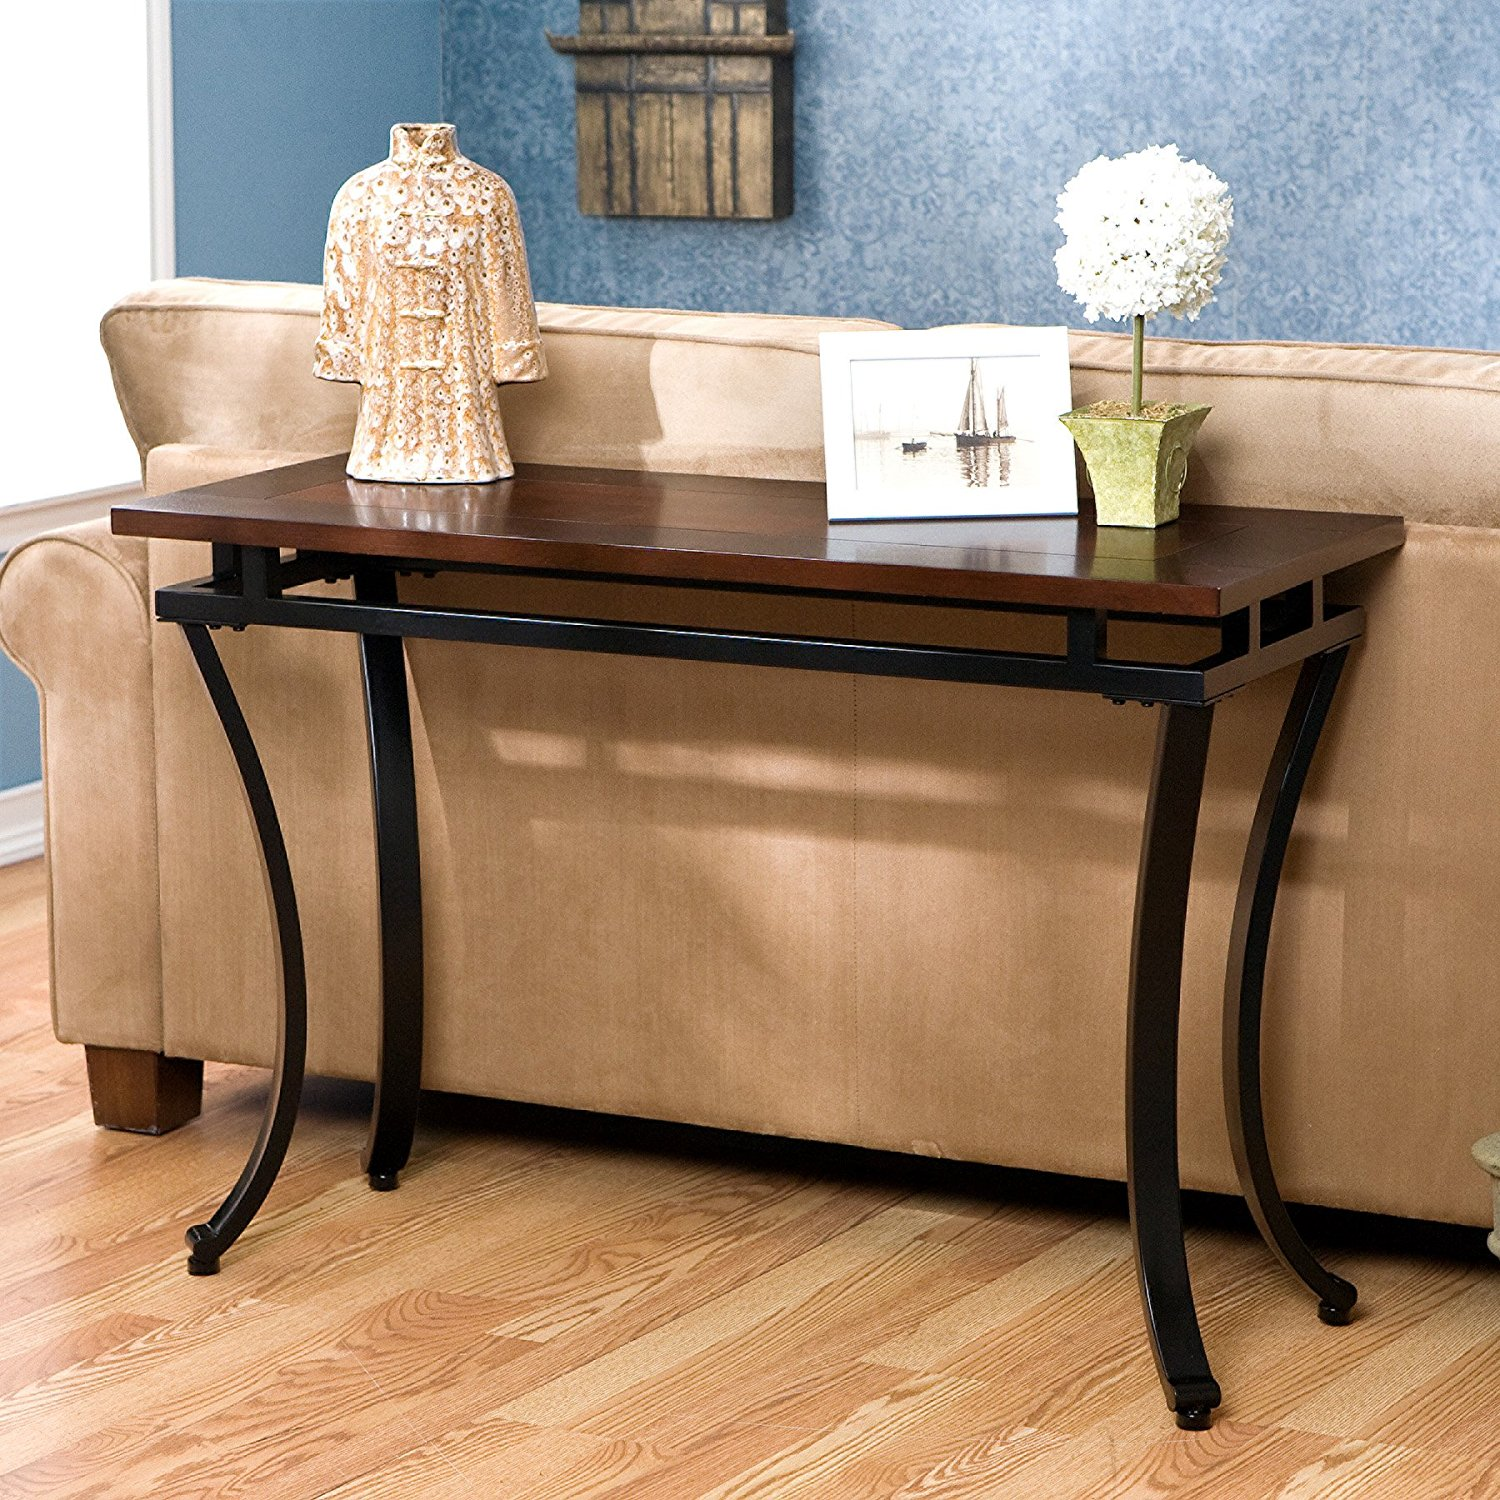 sofa table astounding back design behind the couch southern enterprises modesto designs ideas accent drum seat with marble coffee target comfy patio furniture antique drop leaf